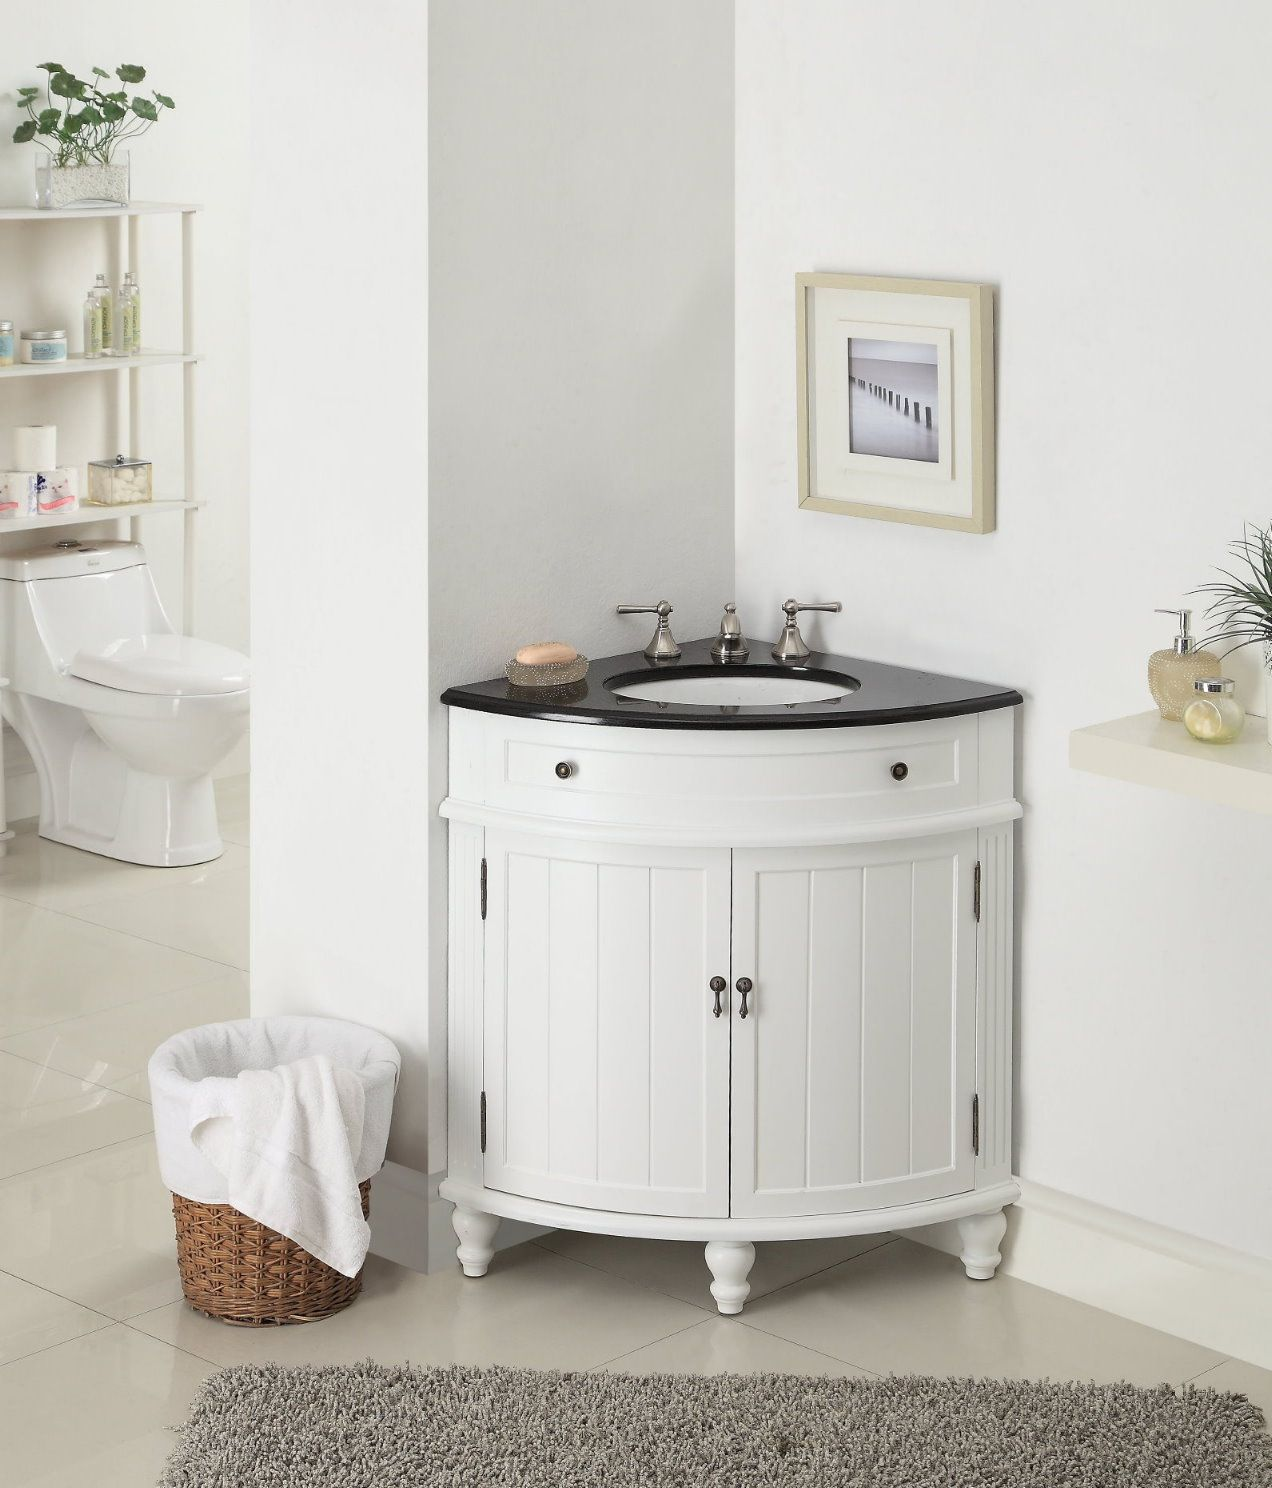 Corner Cabinet For Your Bathroom A Beauty To Save Space: corner cabinet small bathroom